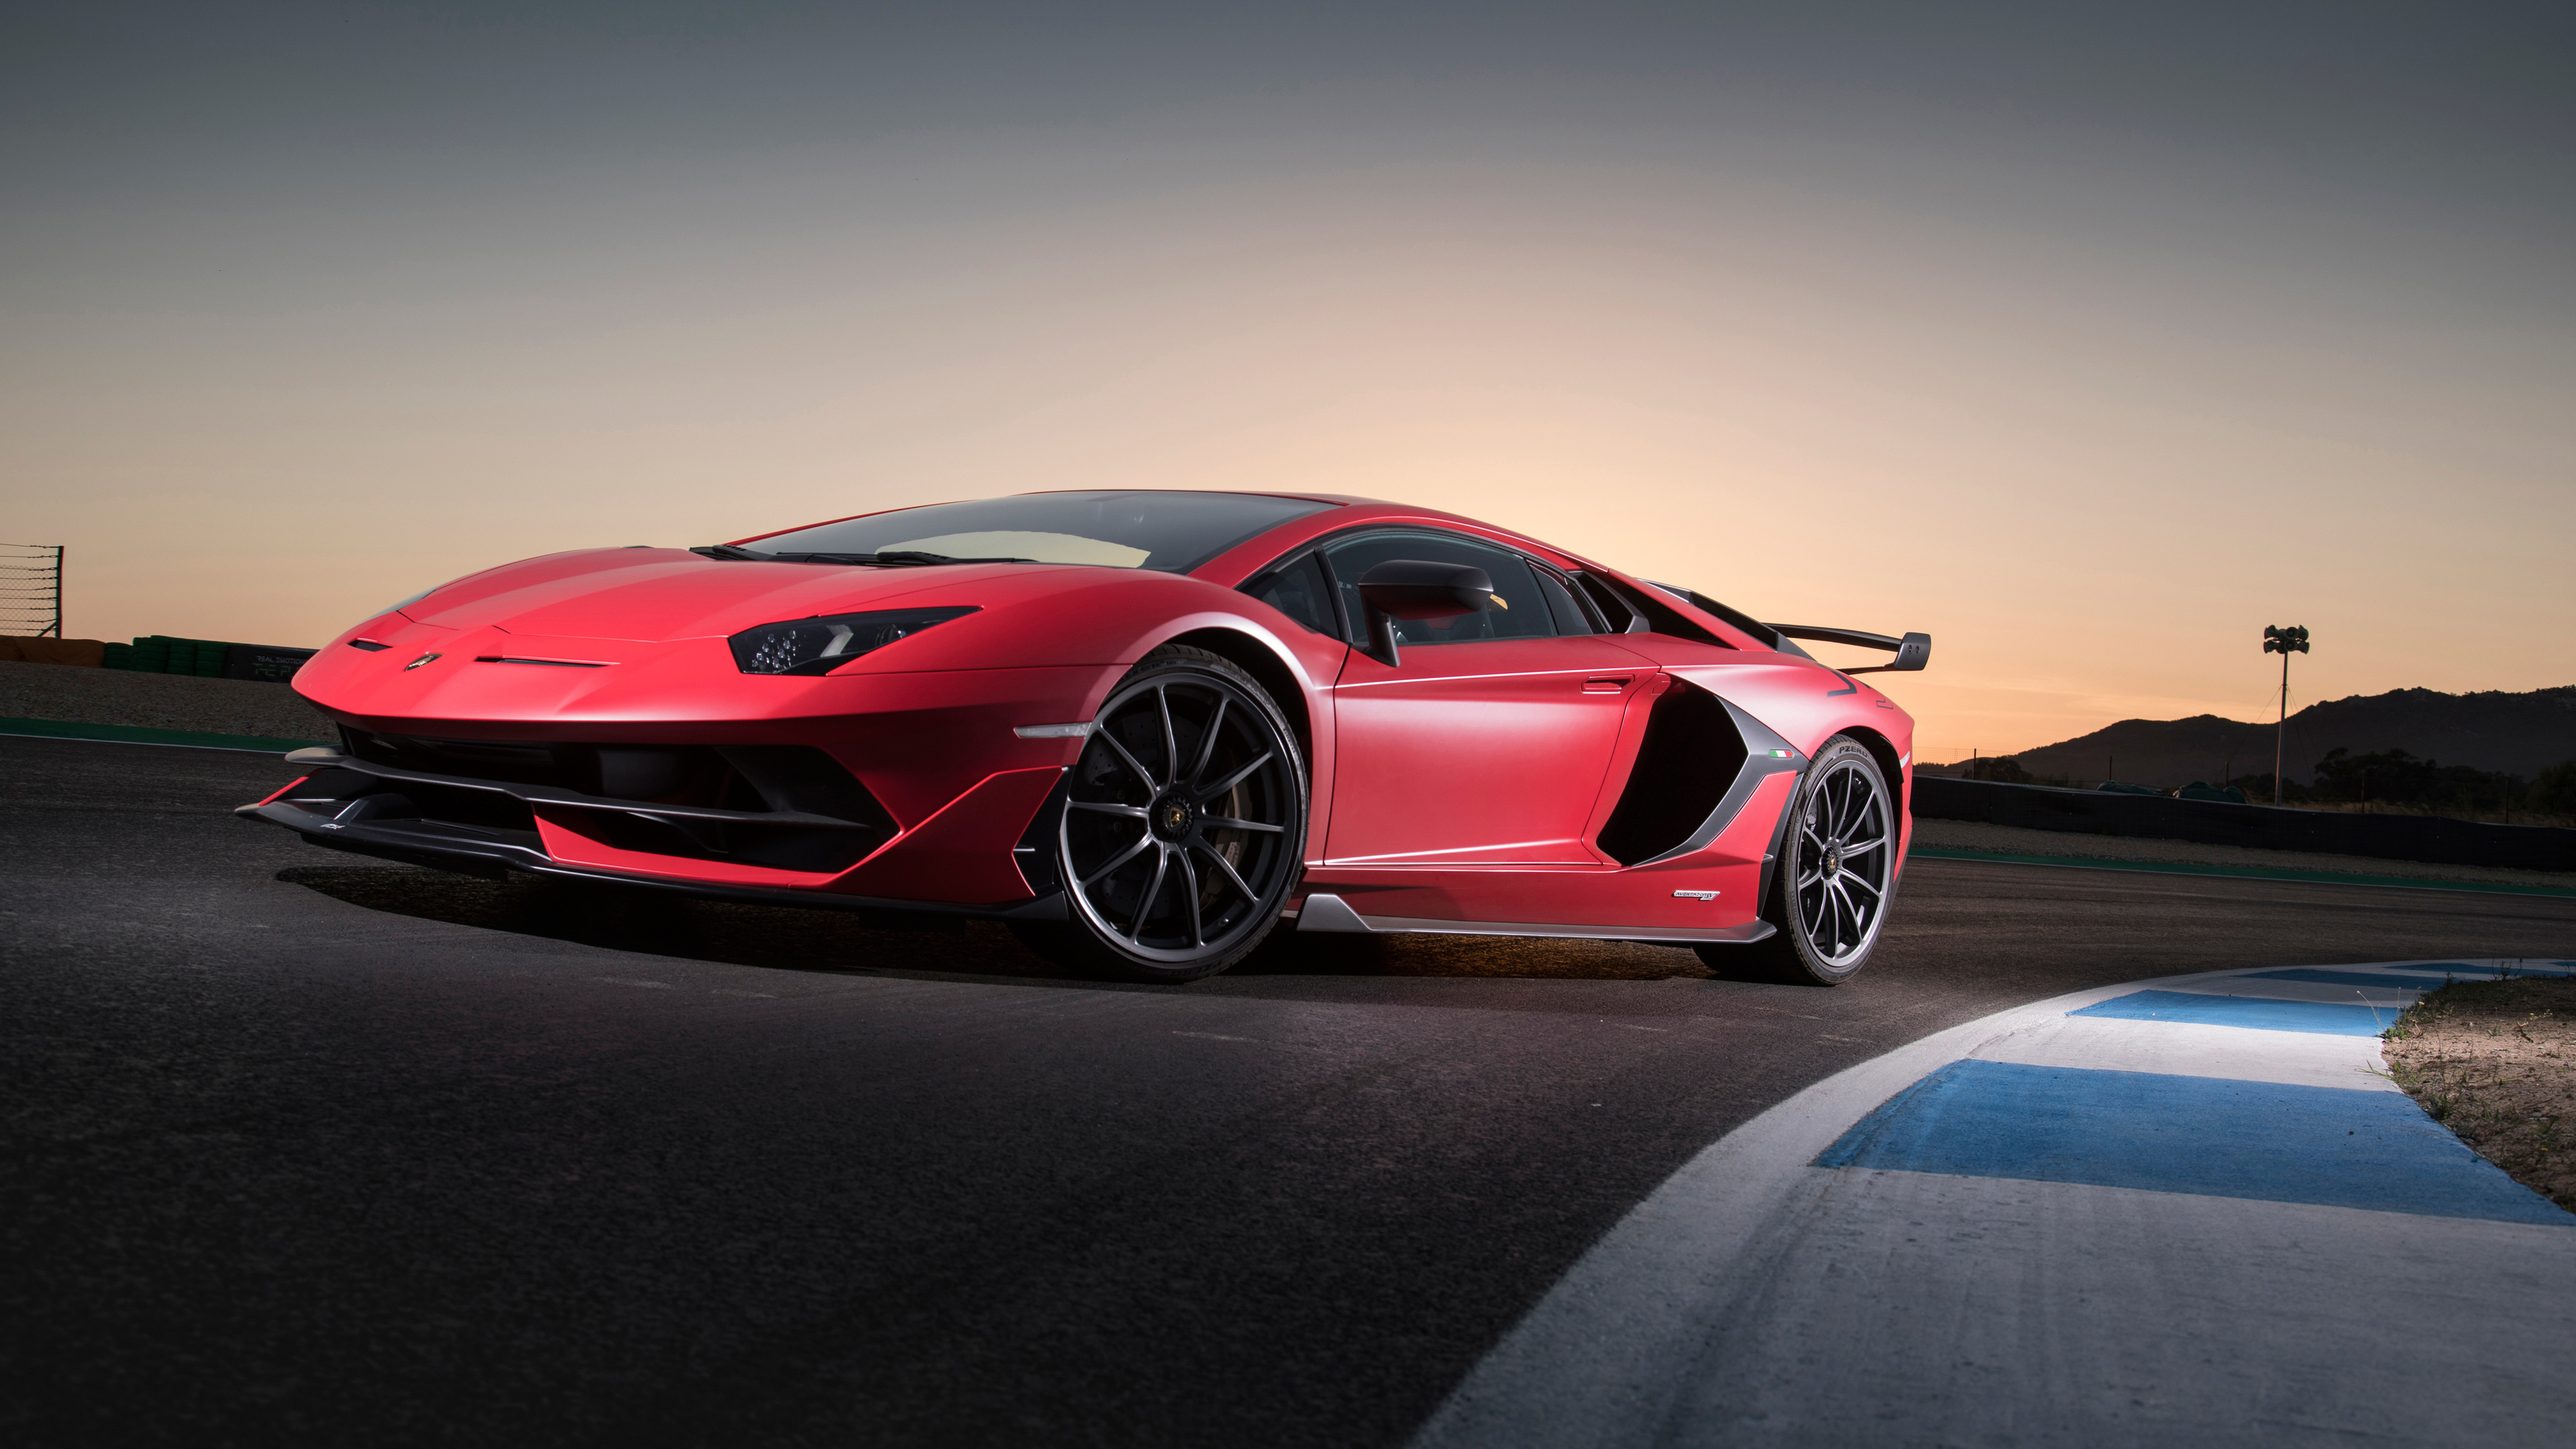 lamborghini aventador svj 2018 4k front 1541969169 - Lamborghini Aventador SVJ 2018 4k Front - lamborghini wallpapers, lamborghini aventador wallpapers, lamborghini aventador svj wallpapers, hd-wallpapers, cars wallpapers, 4k-wallpapers, 2018 cars wallpapers